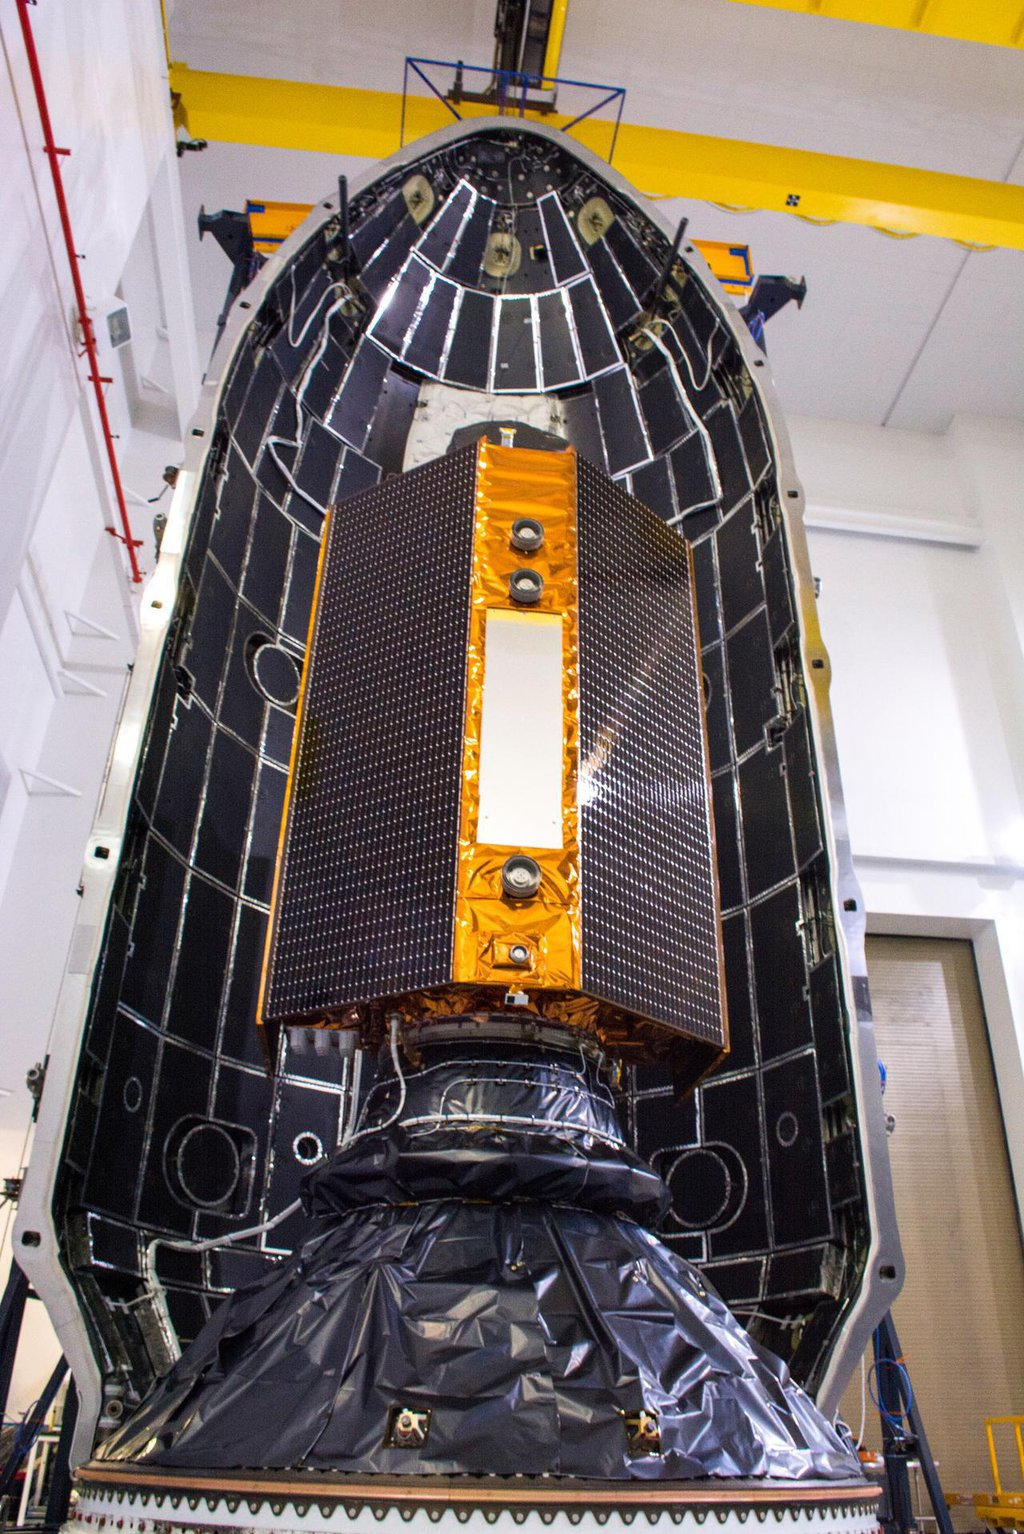 The Sentinel-6 Michael Freilich satellite is encapsulated in a protective nosecone, or payload fairing, at Vandenberg Air Force Base in California. The fairing will sit atop a SpaceX Falcon 9 rocket that will launch the satellite into Earth orbit.